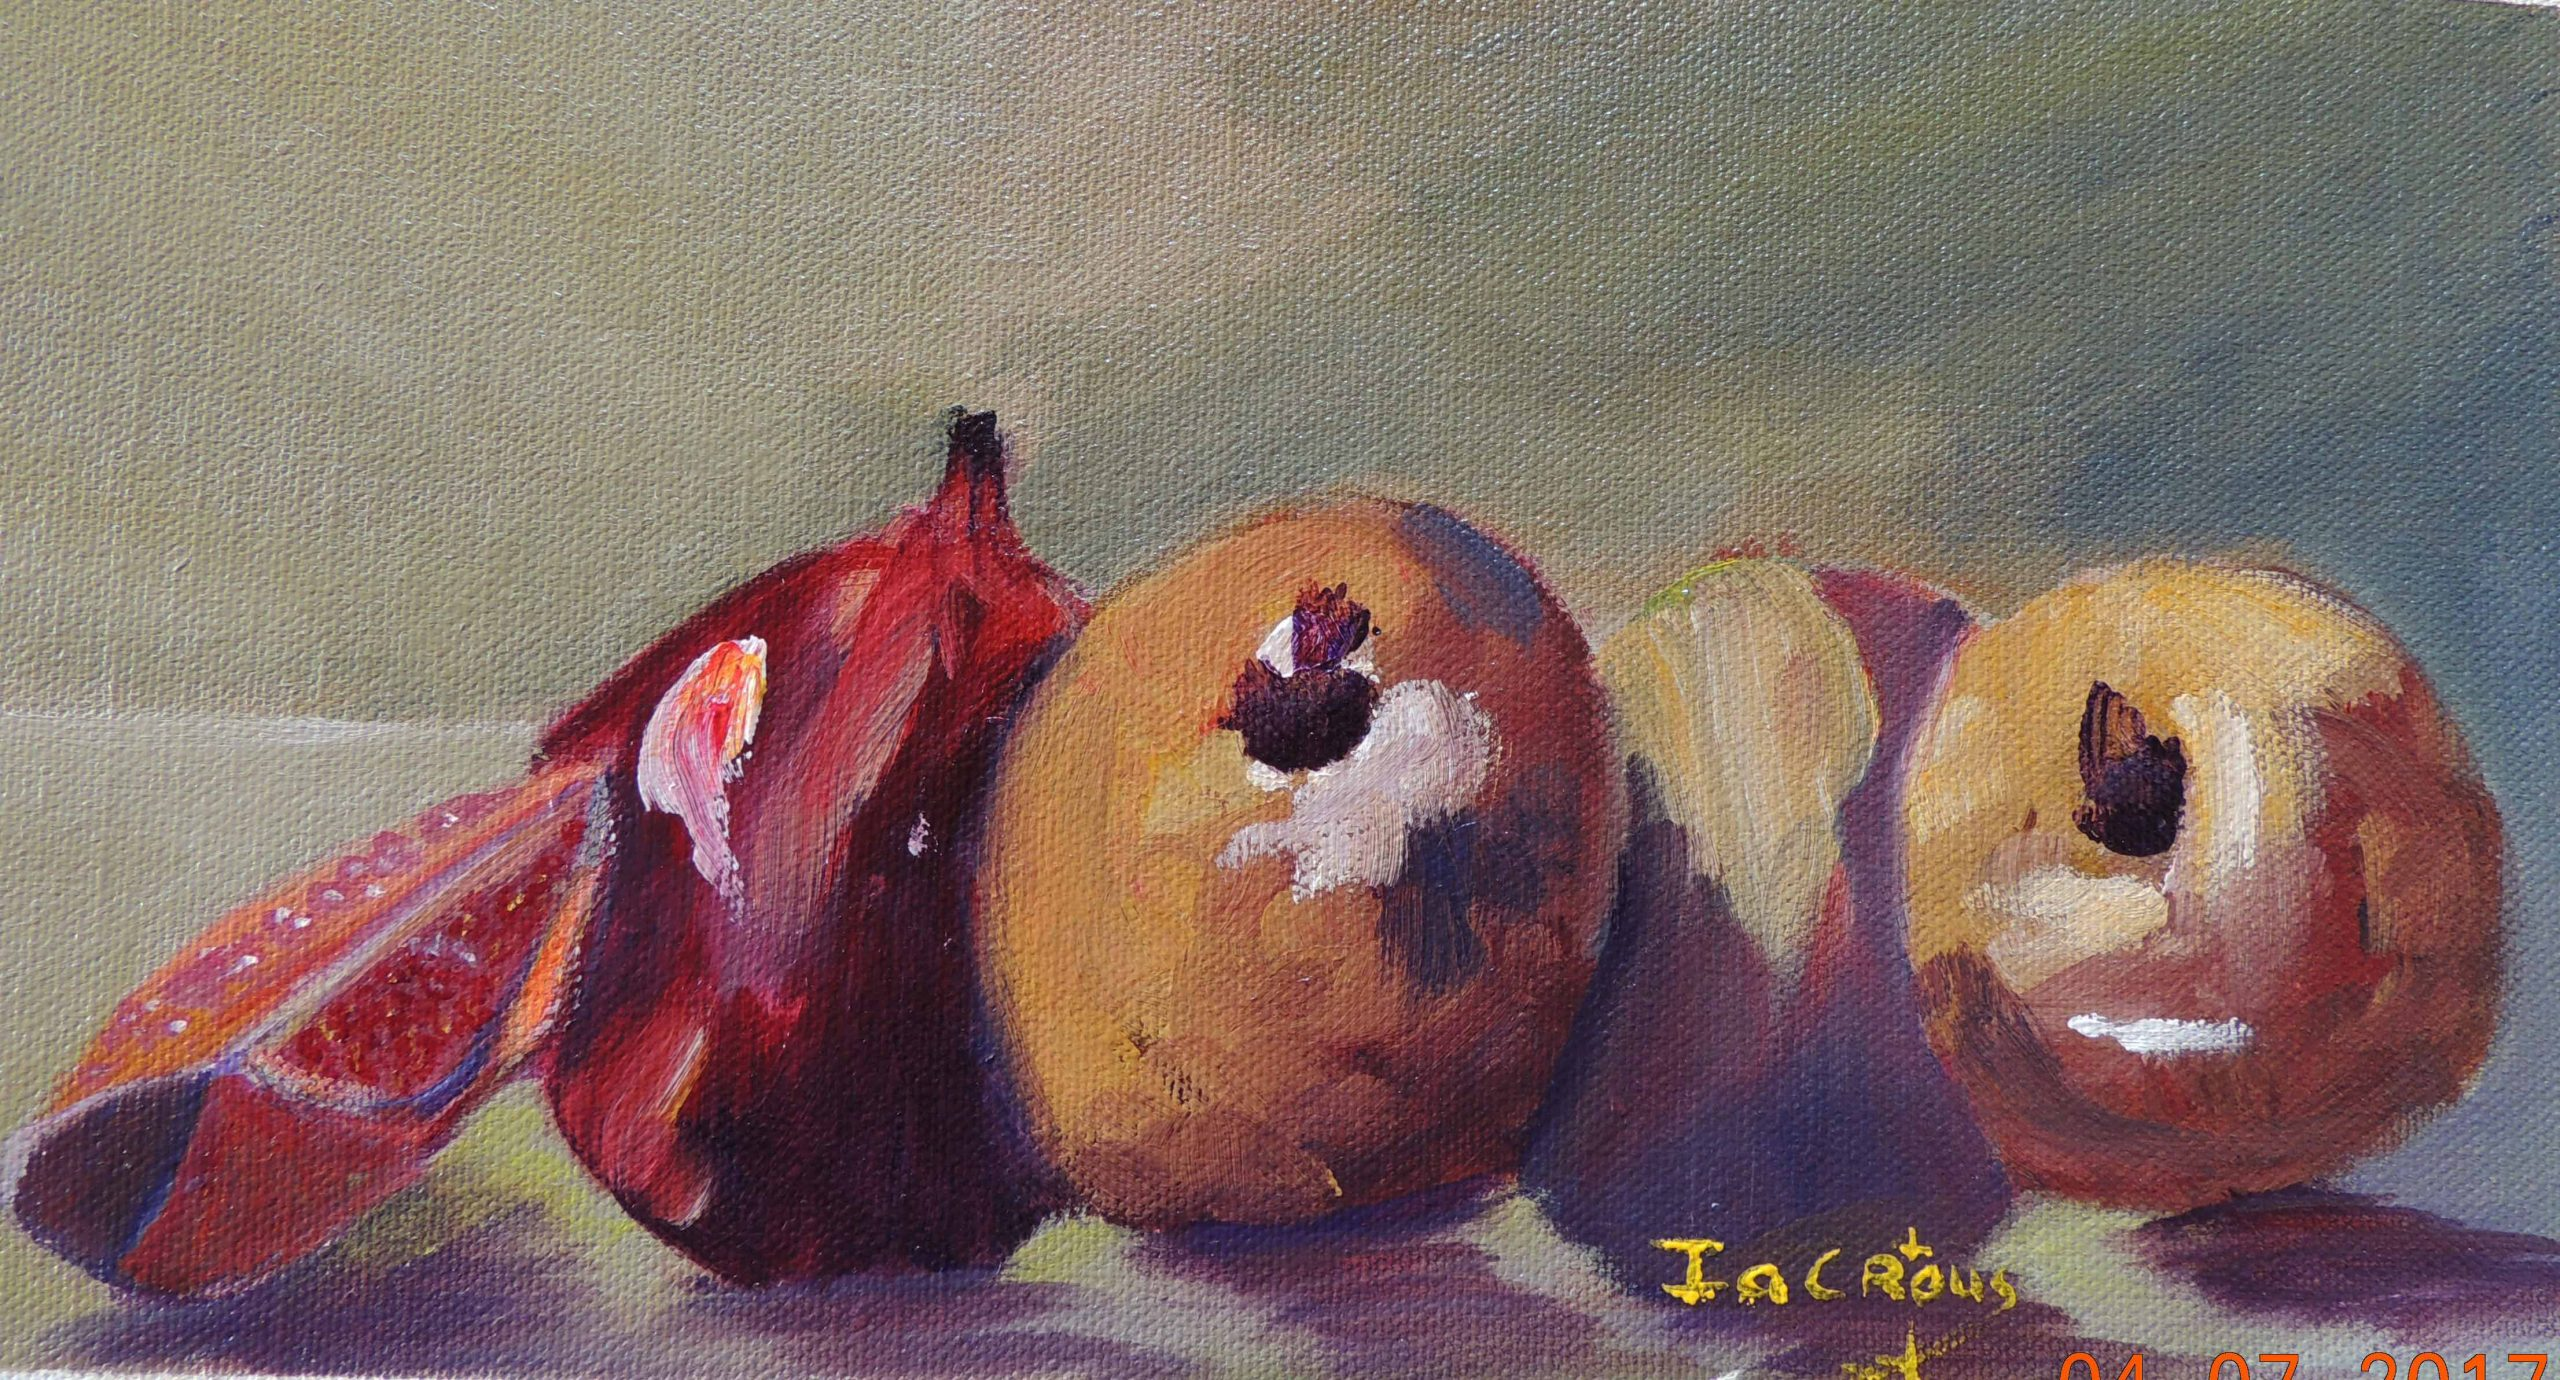 Blog no 1: THE POWER, PASSION AND SYMBOLISM OF THE POMEGRANATE